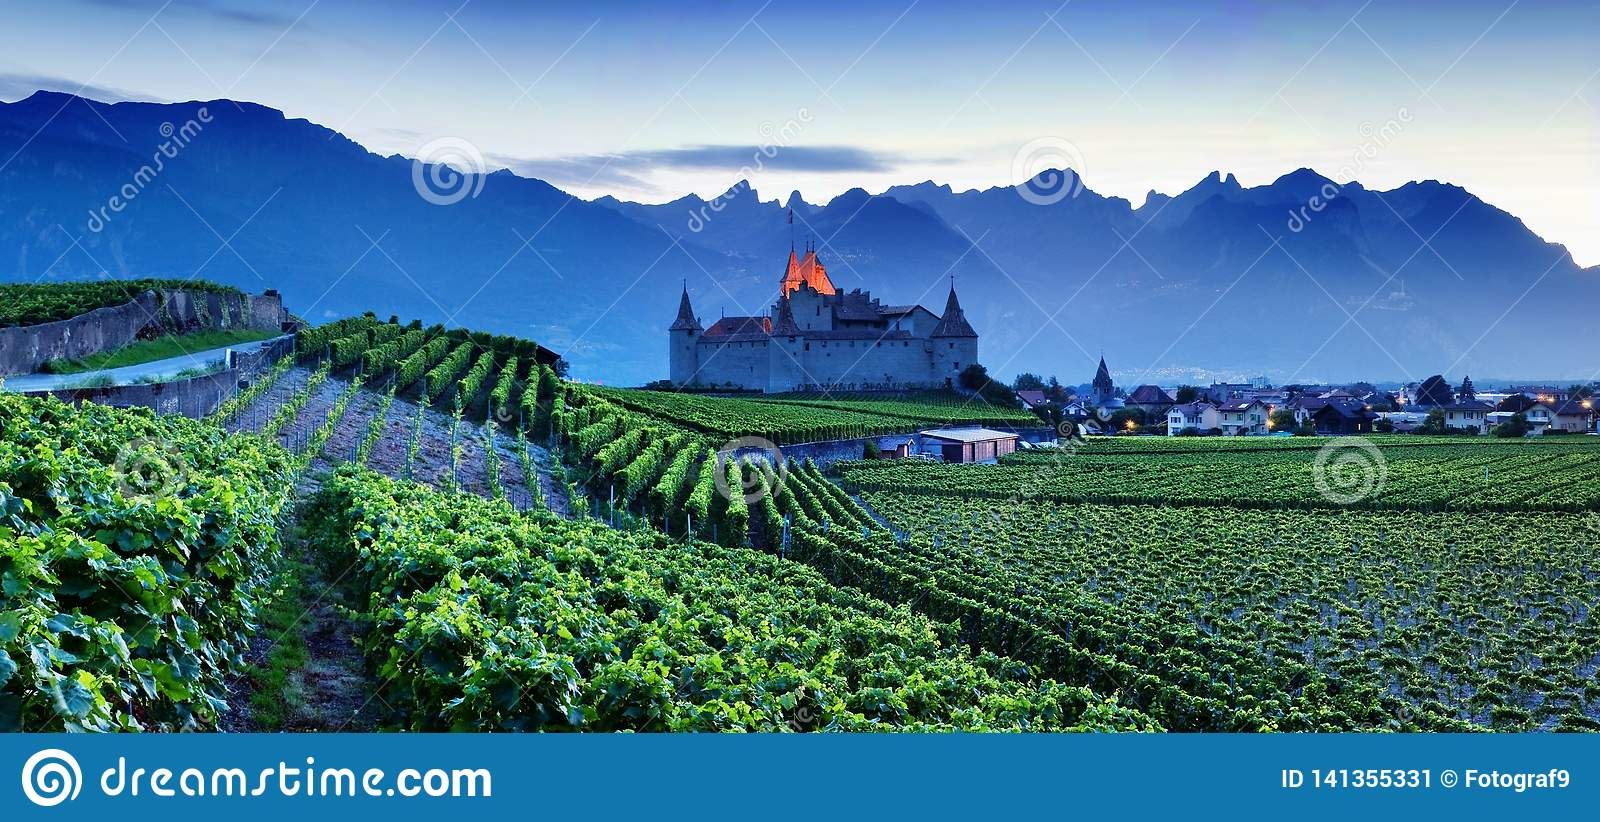 Famous castle Chateau d`Aigle in canton Vaud, Switzerland. Castle in Aigle is overlooking surrounding vineyards and the Alps.